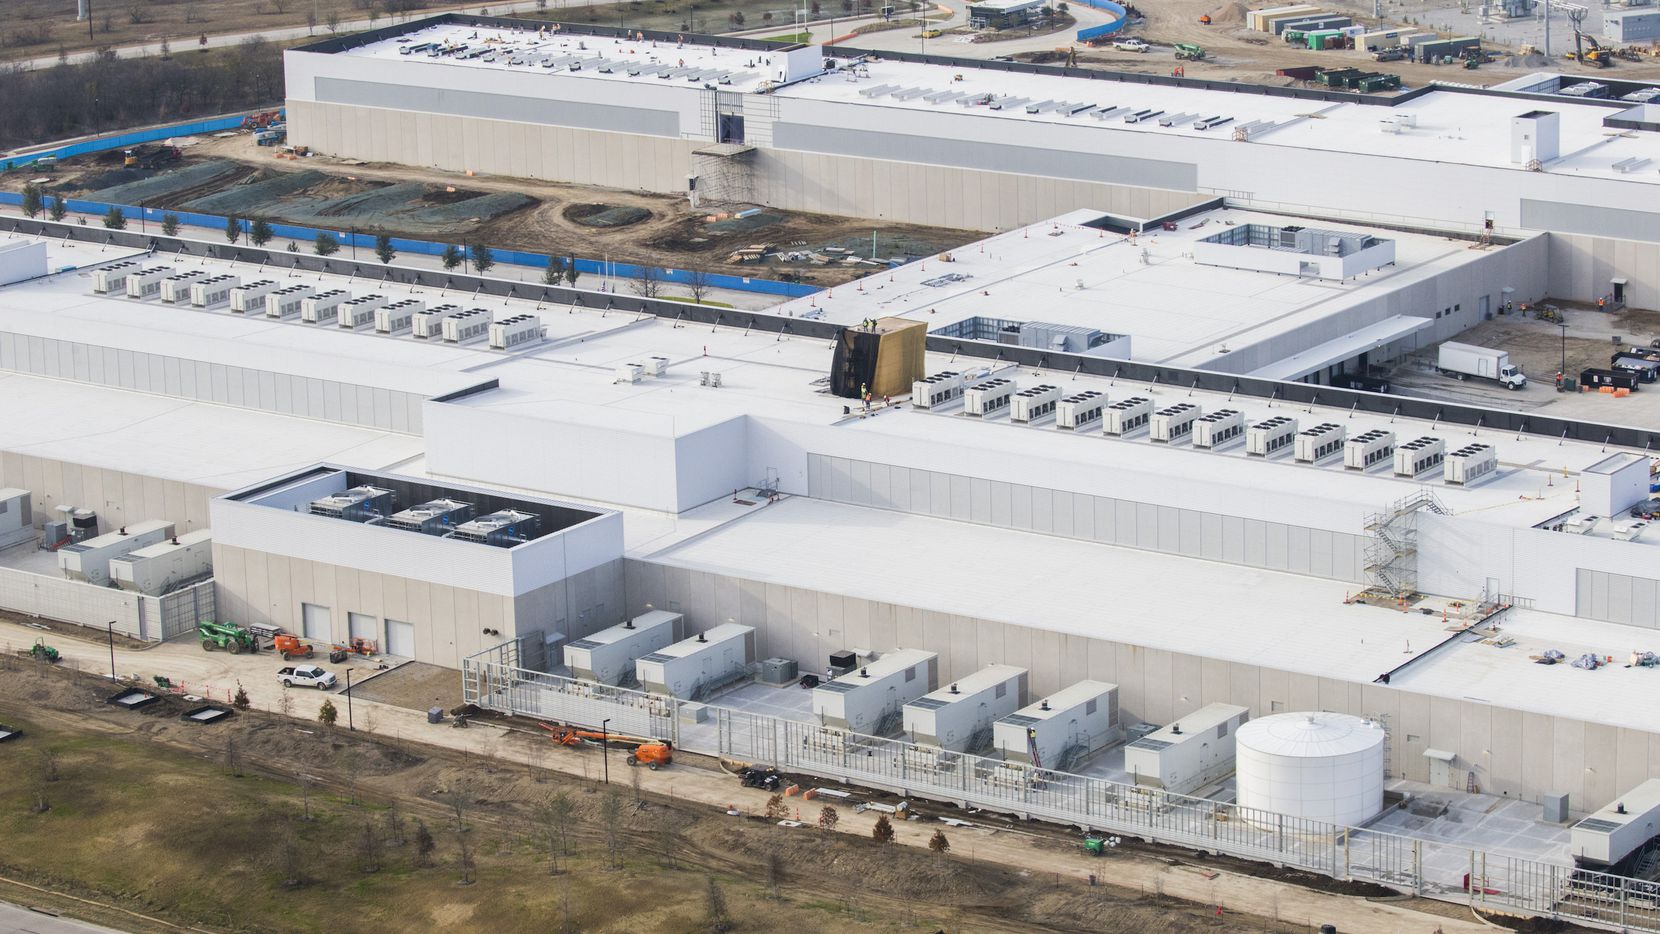 The new Facebook Data Center in North Fort Worth is expected to eventually be valued at more than $1 billion.